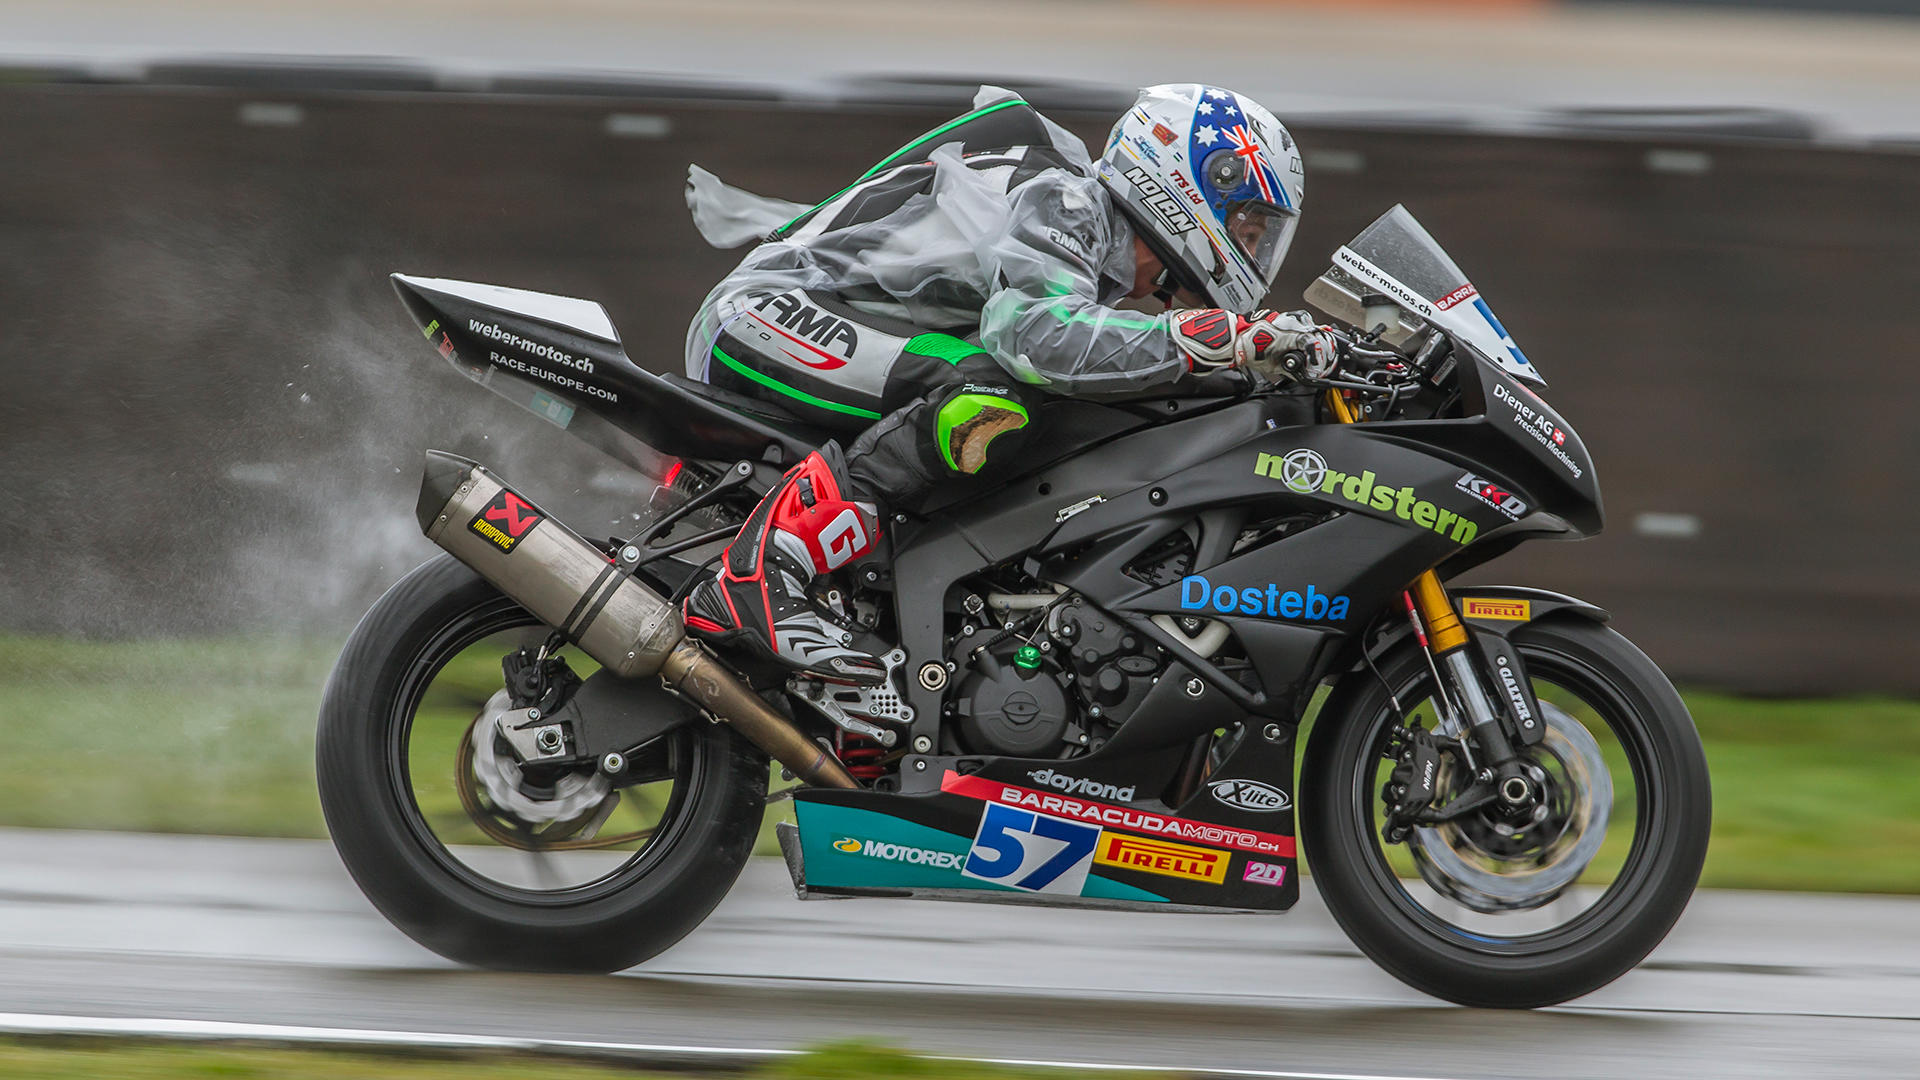 Bilder vom 2. Qualifying der IDM Supersport 600 am Samstag in Assen.